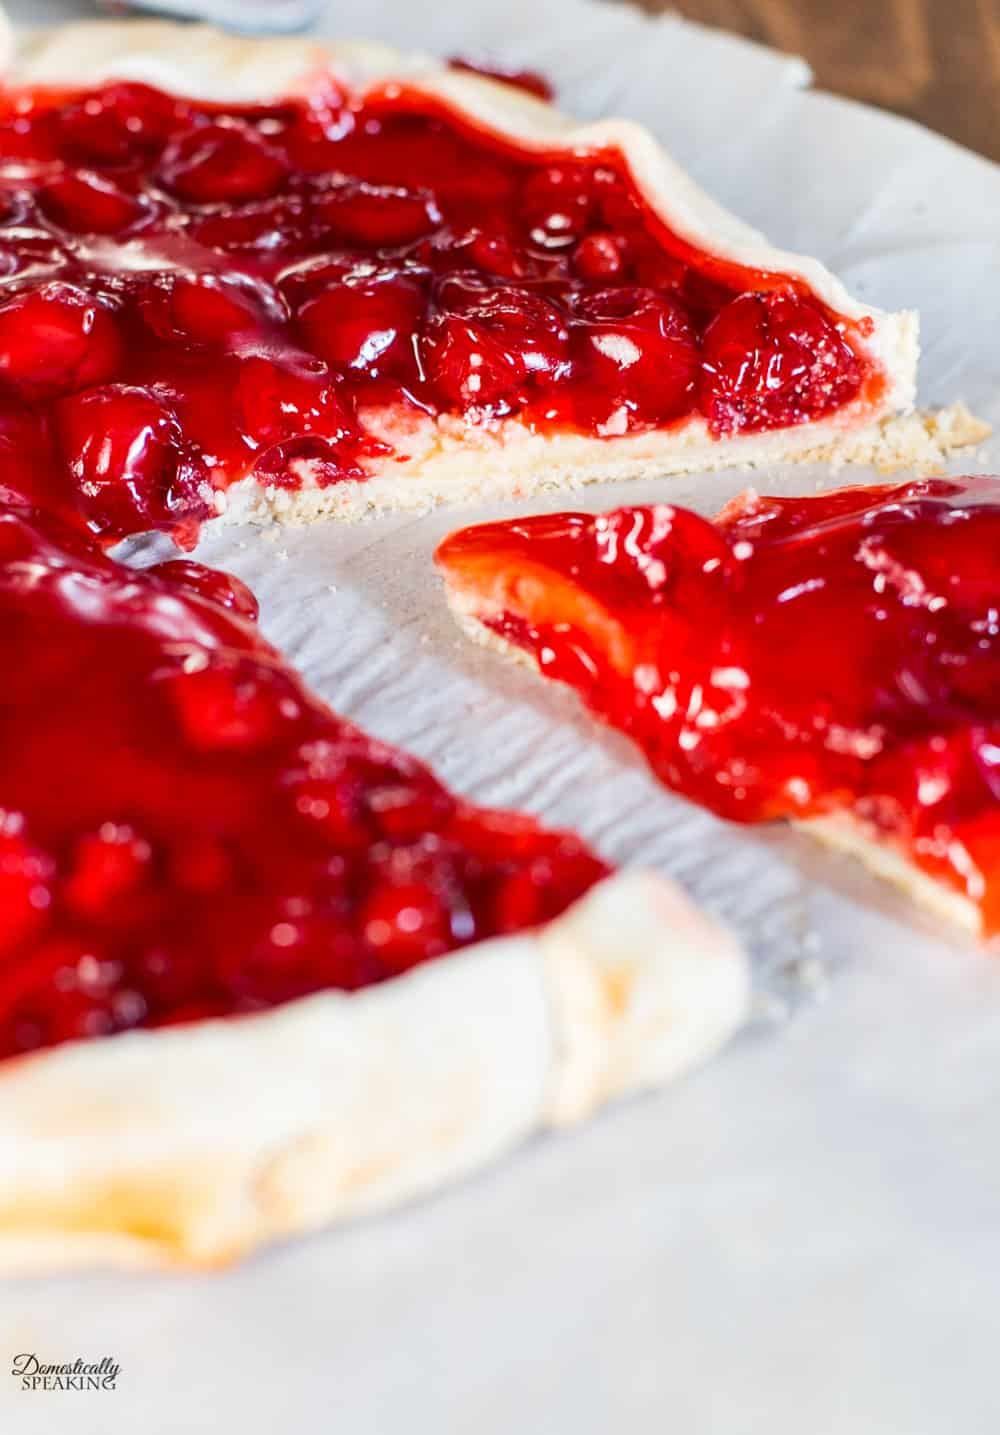 Flakey pie crust, almond cream cheese filling topped with delicious cherry pie filling - the perfect summer dessert!